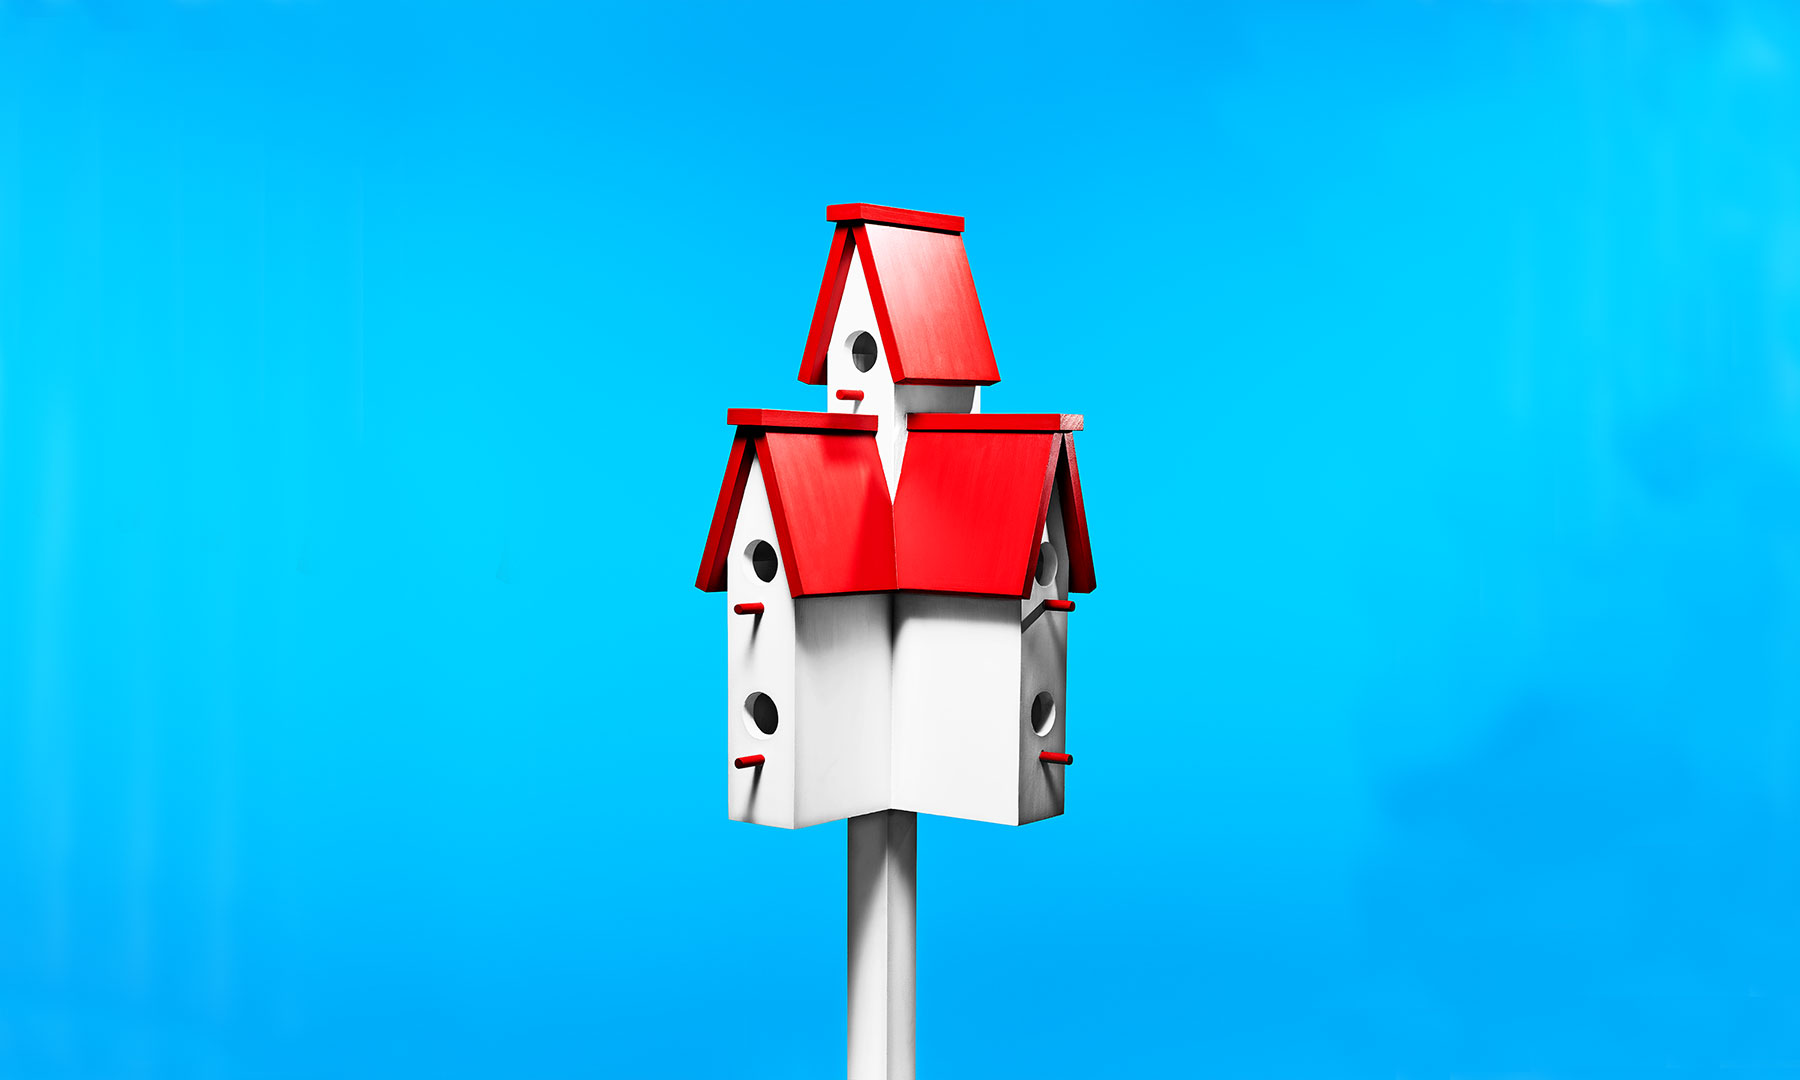 Red and white birdhouse